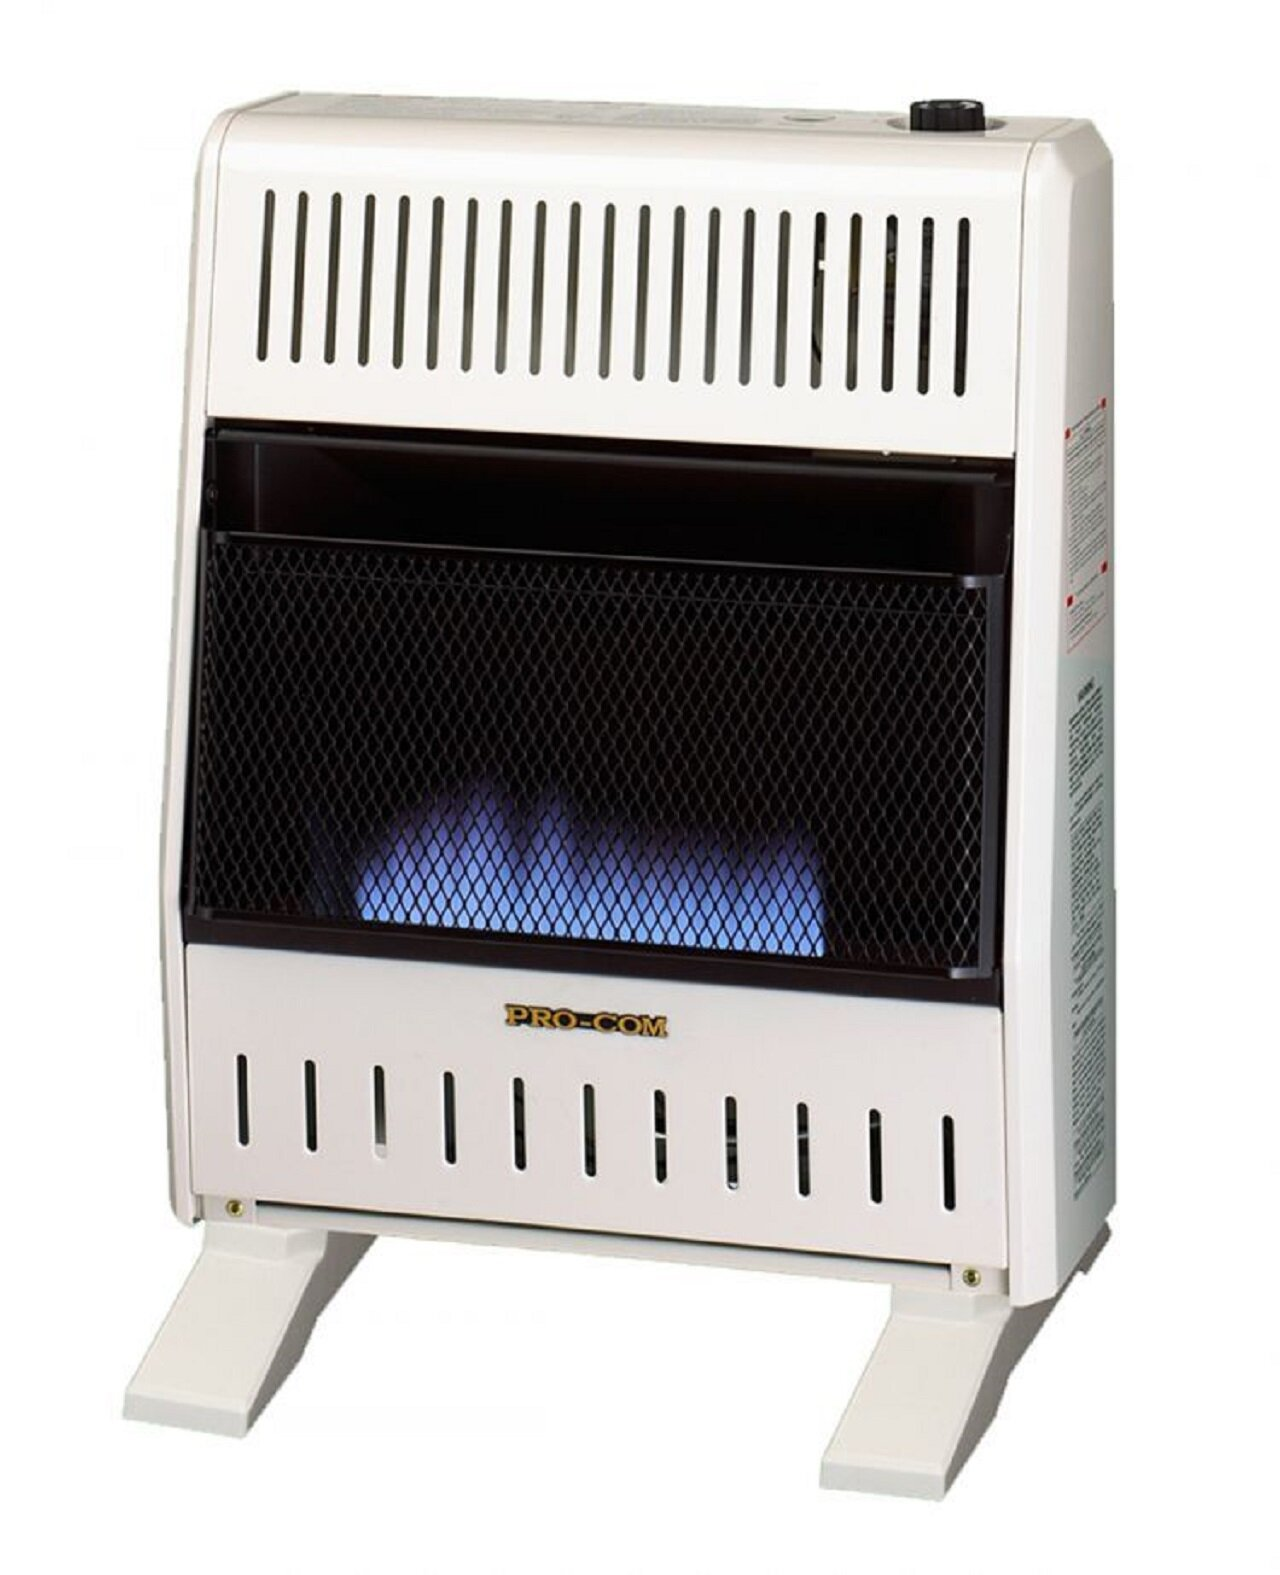 Wall Mounted Natural Gas Fireplace Elegant Convection Wall Mounted Heater